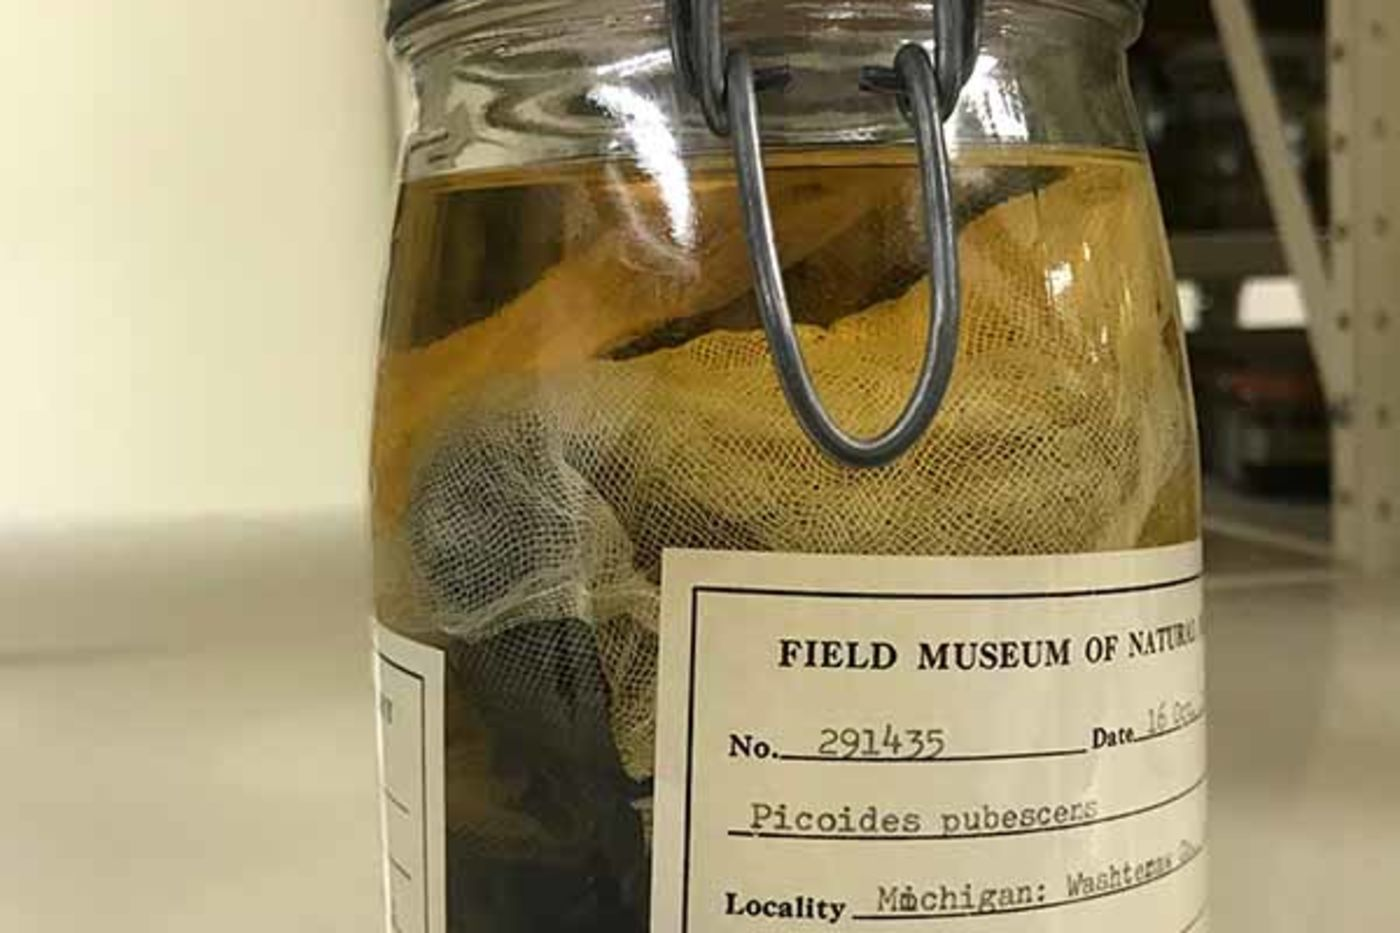 A large jar with a label containing a specimen in liquid